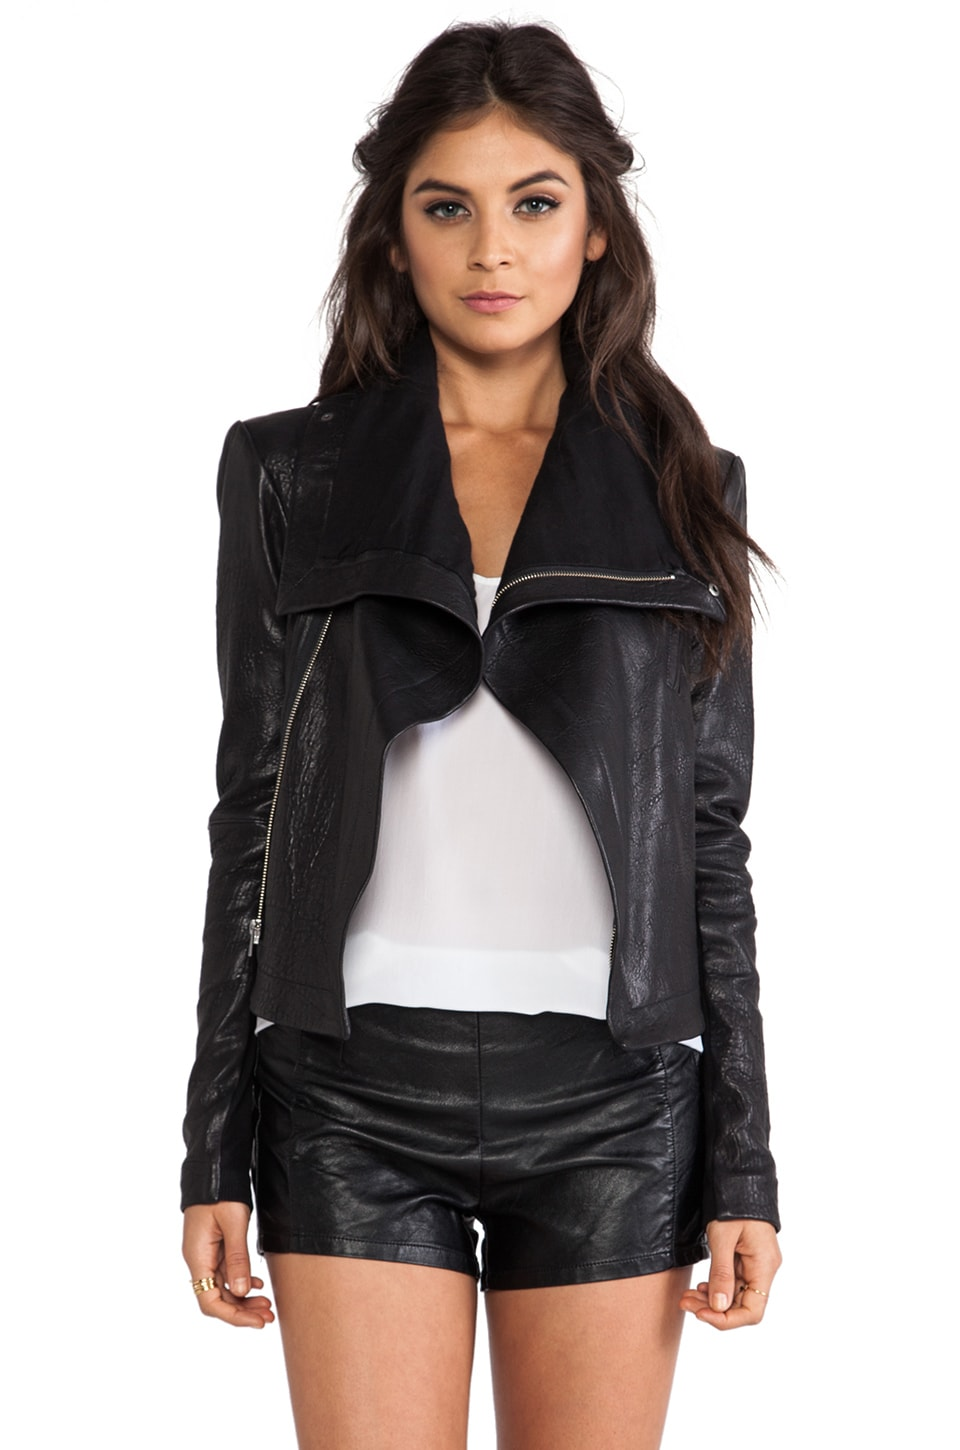 VEDA Max Classic Jacket in Black